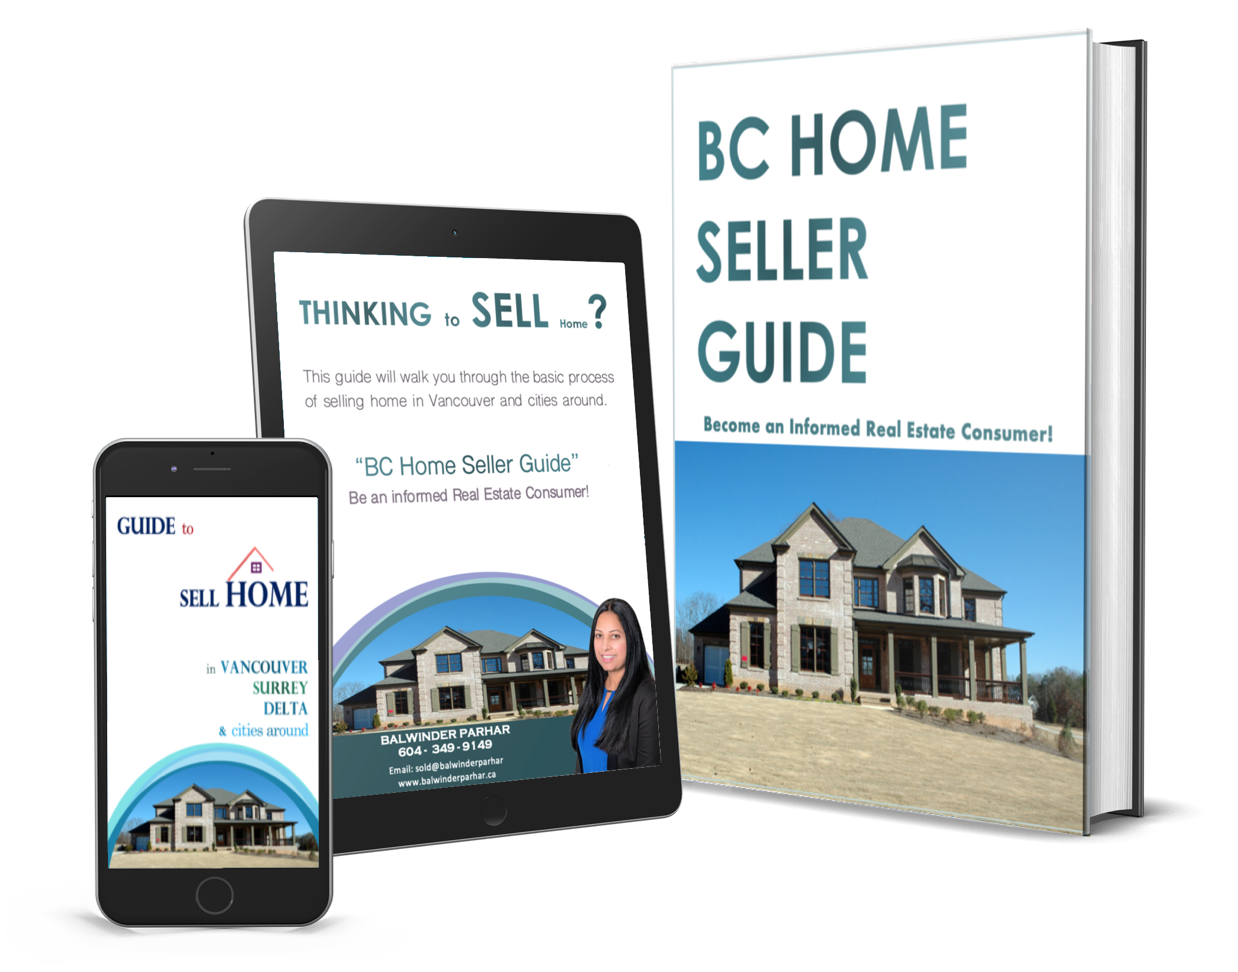 Vancouver BC Home SELLER Guide